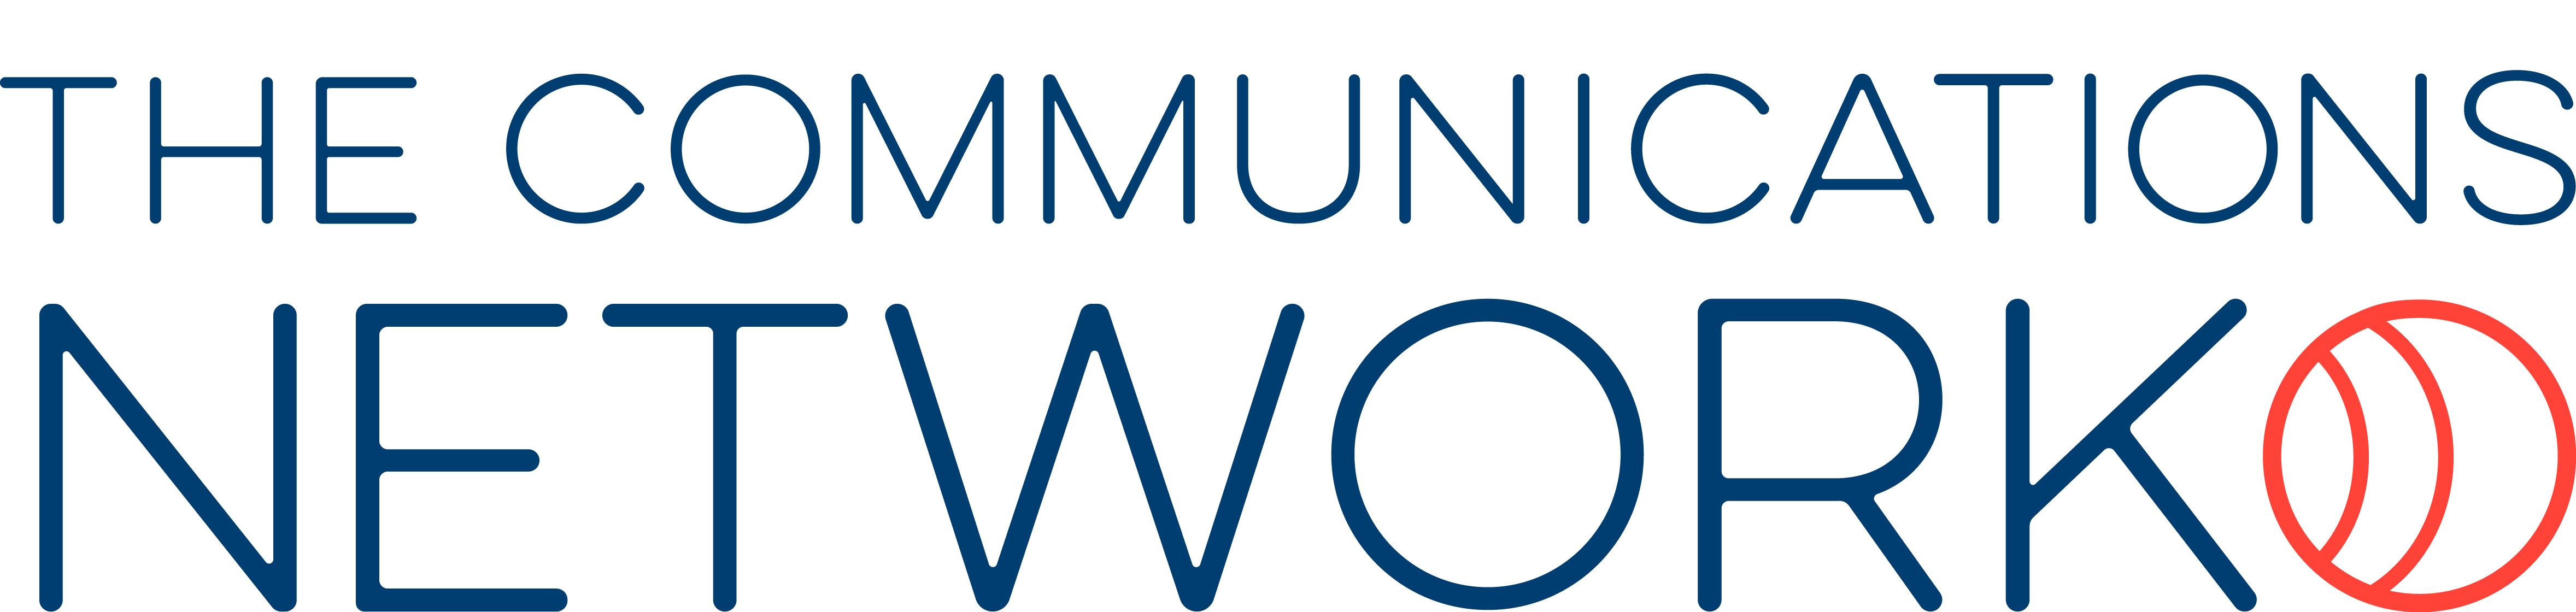 The Communications Network logo